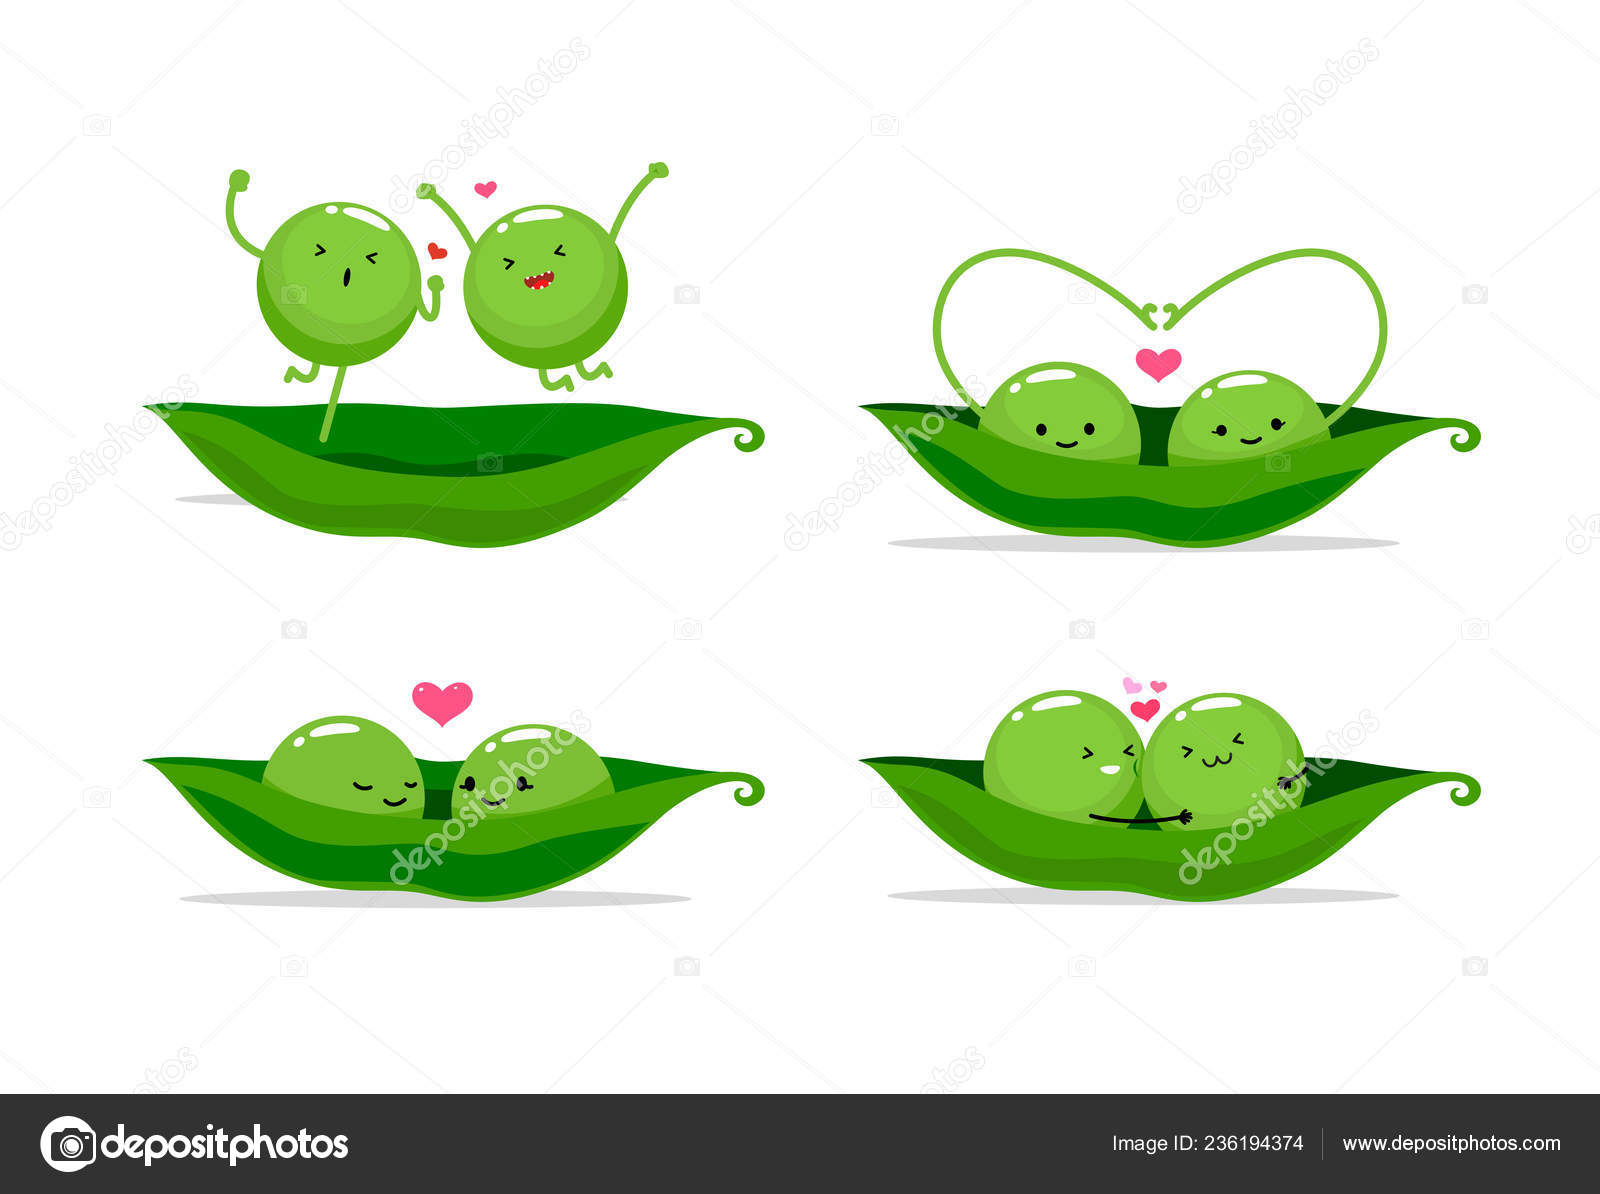 Clipart: two peas in a pod.